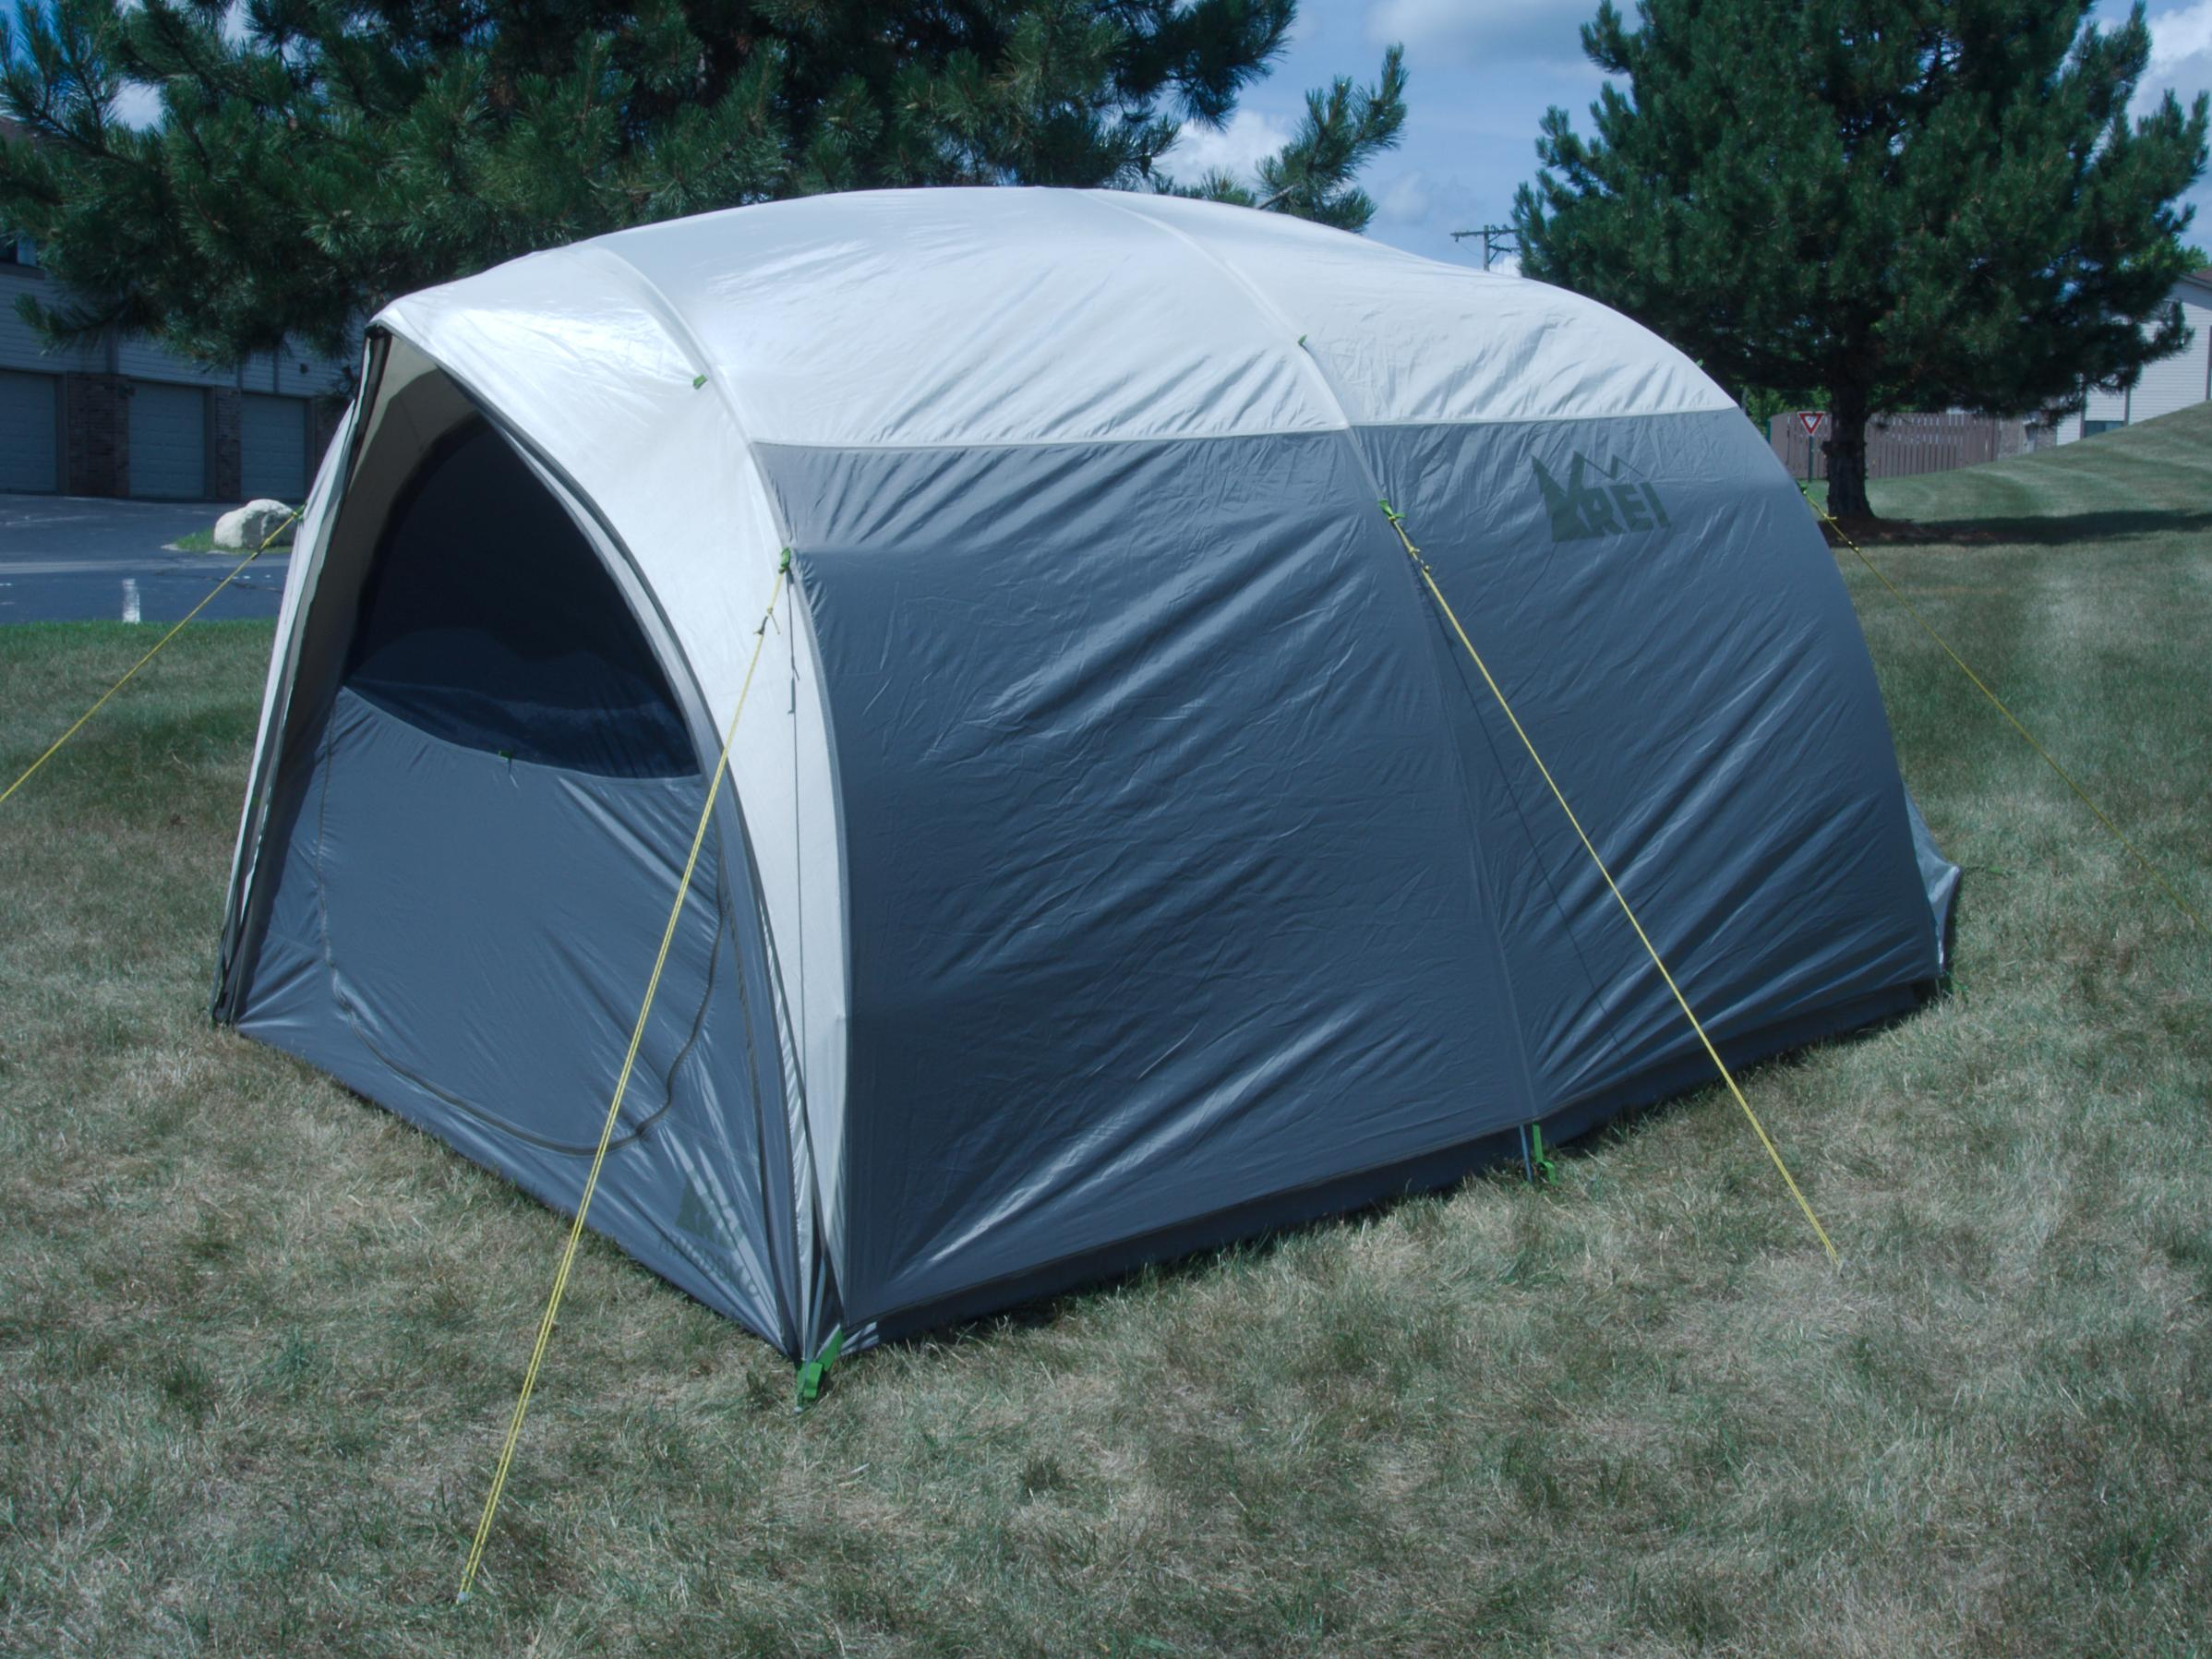 Purchased last Aug. at REI Garrage Sale (tiny burn hole inside side wall) used one time so far. A KingDome 8 is also available. & BWCA Car camping tent... rei kingdom what ya think? Boundary ...